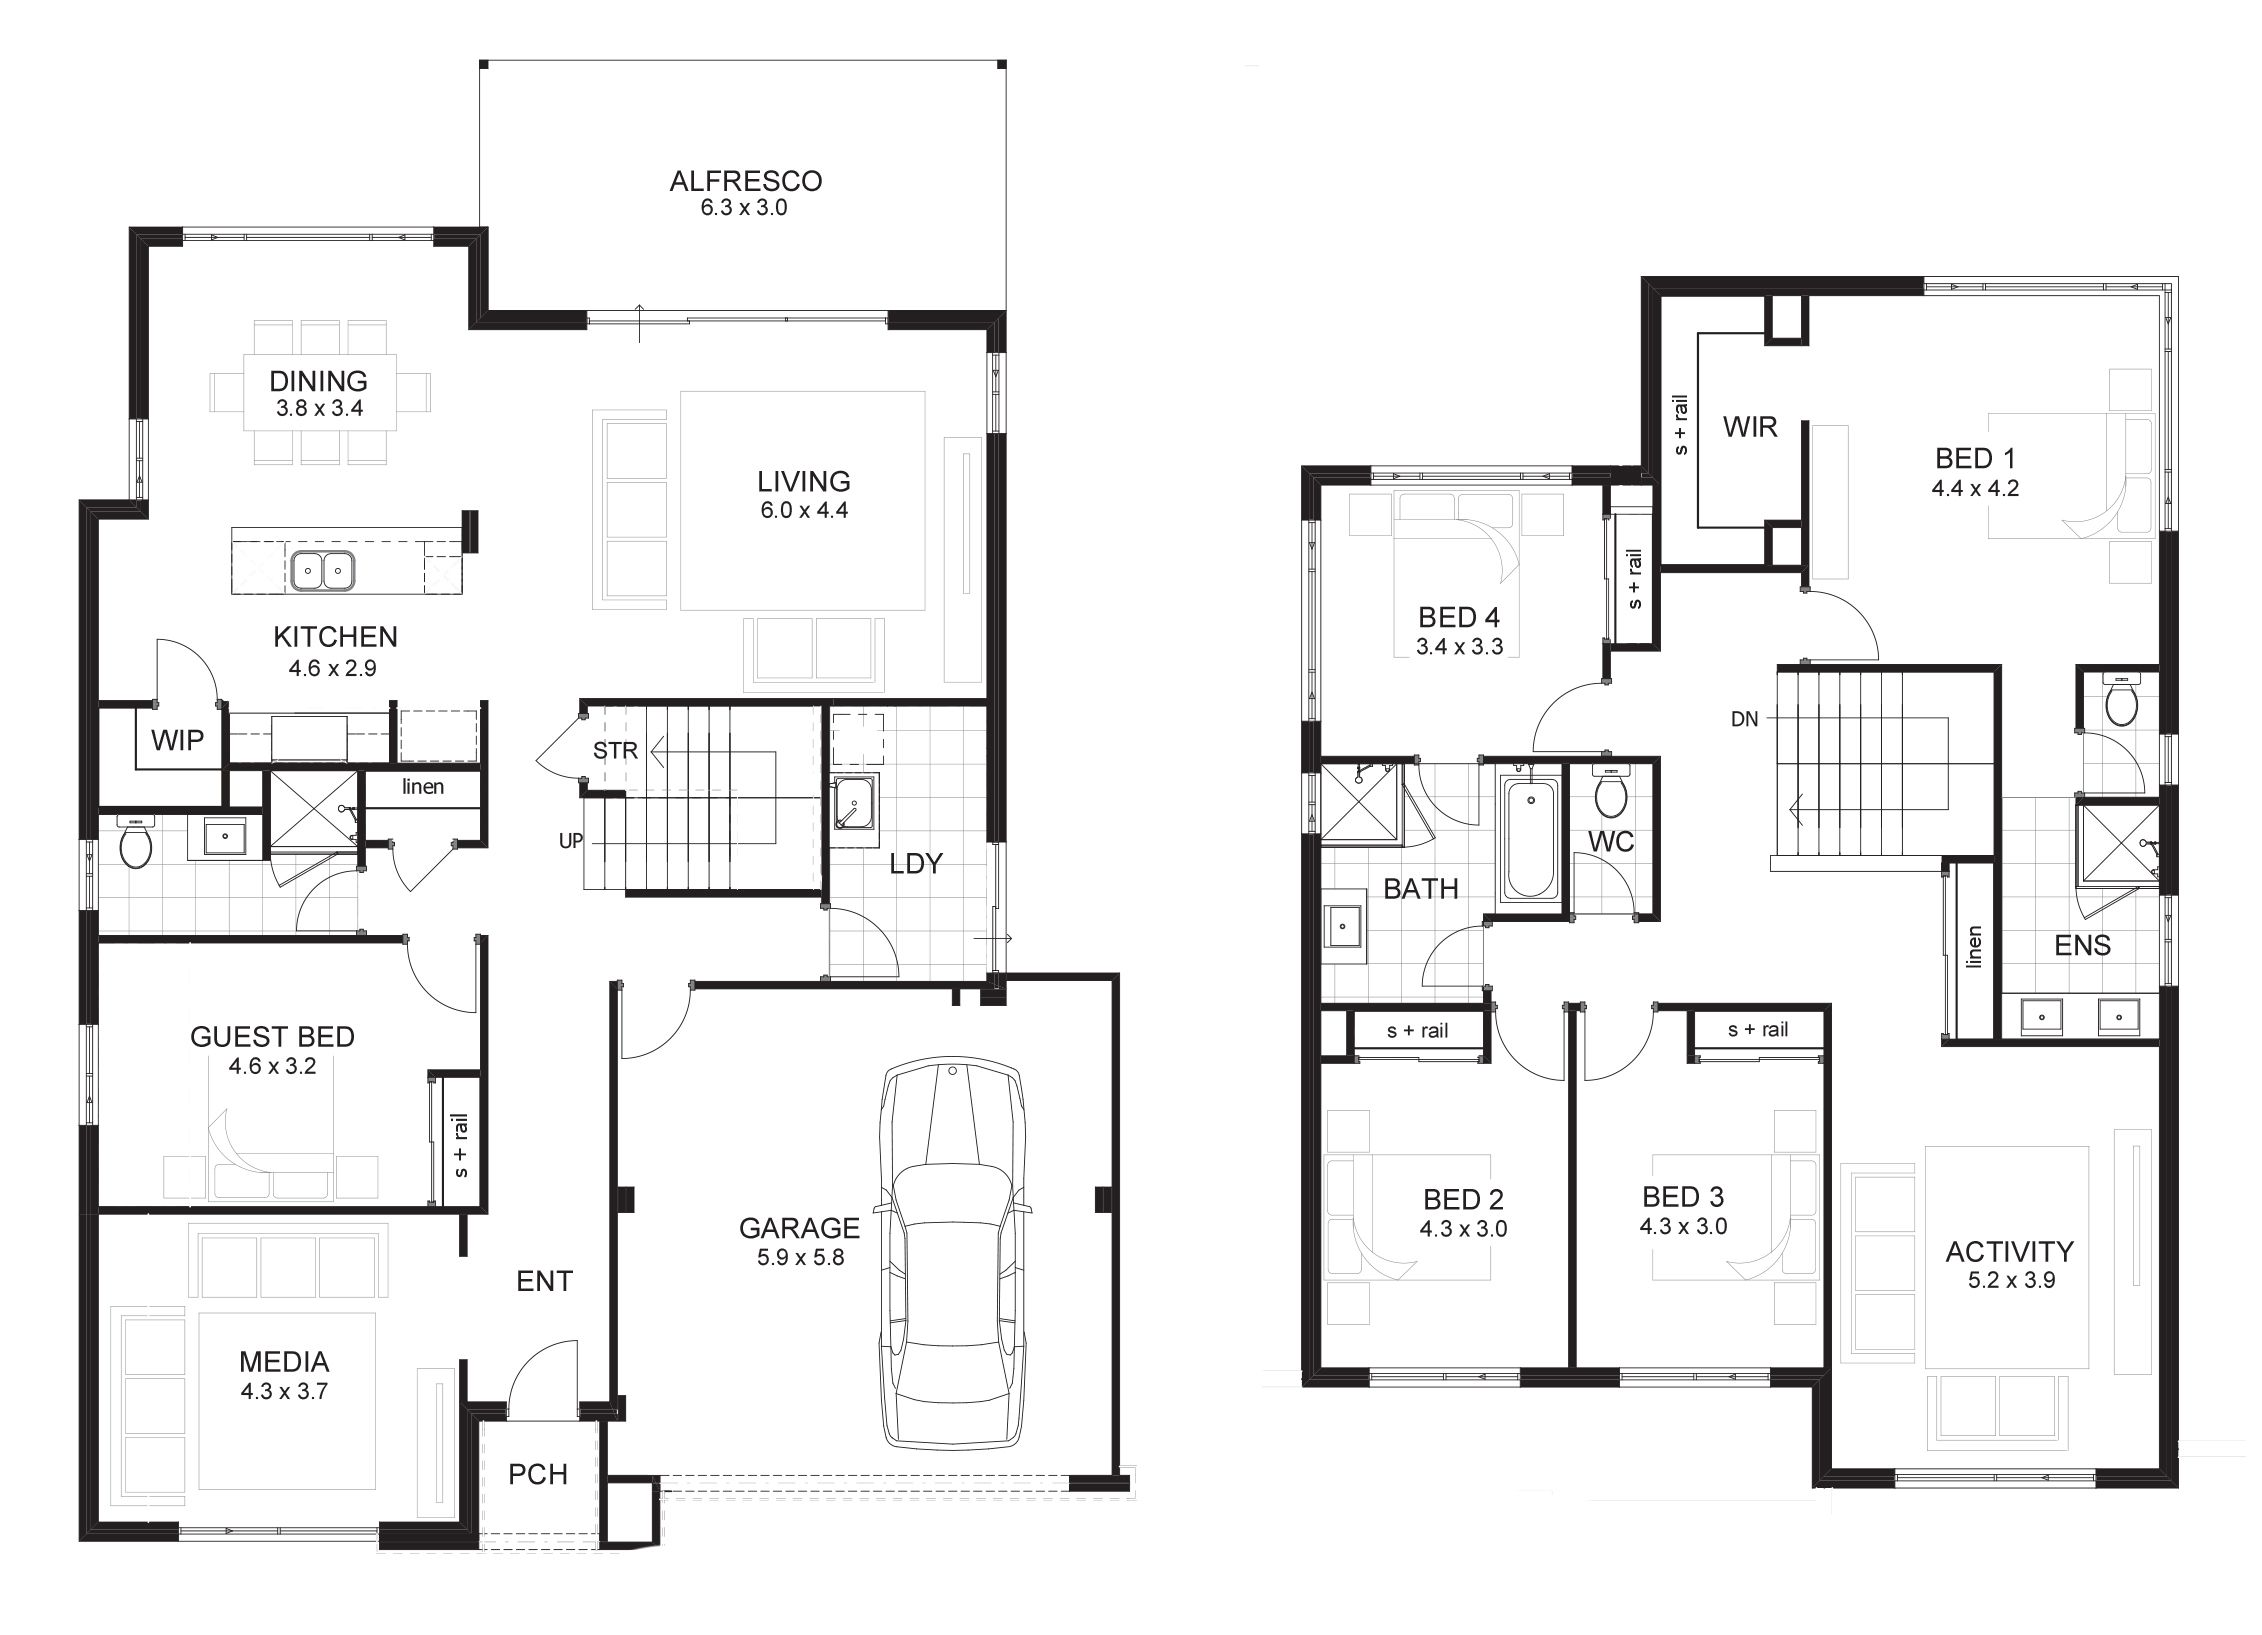 2 storey house designs and floor plans google search for Floor plan of a two storey house